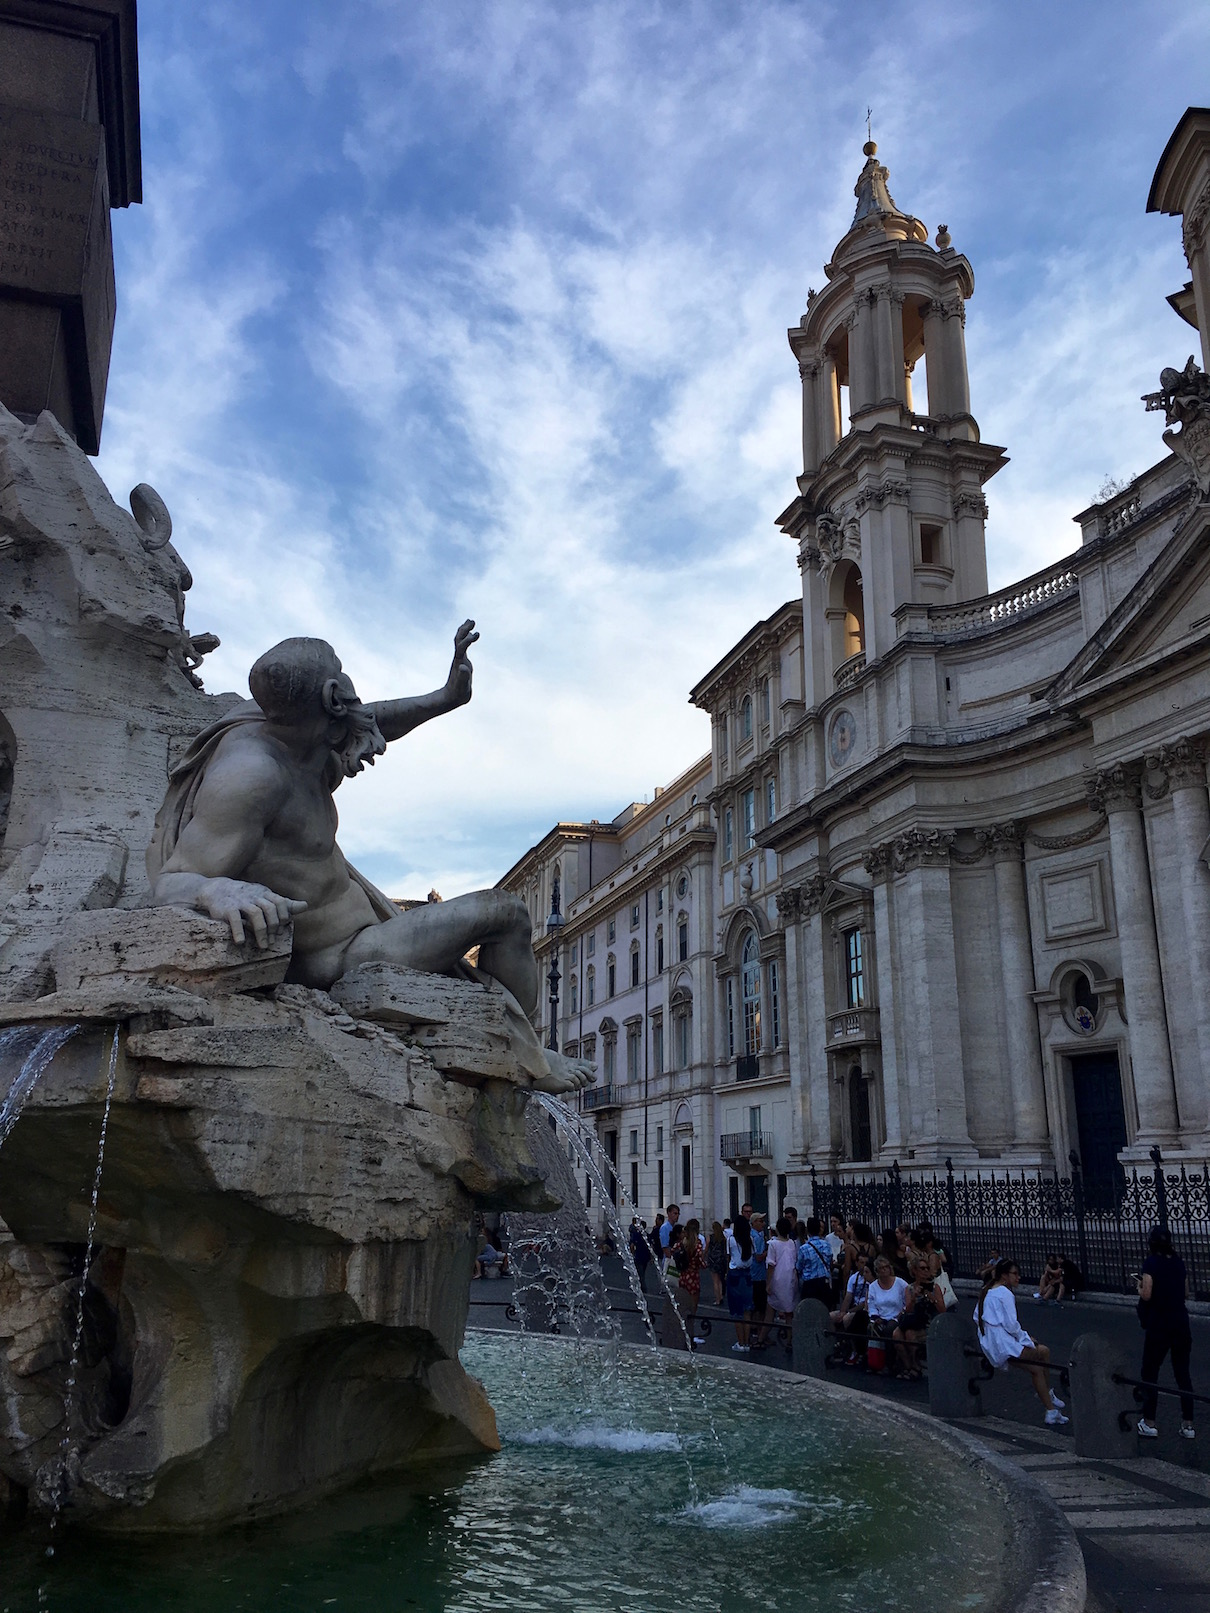 """Our final concert was in Rome directly across from this incredible Bernini fountain in Piazza Navona—the Fountain of the Four Rivers. The """"in joke"""" that I captured here was that Bernini was a competitor with the architect Borromini who was creating the chapel directly across from the fountain. You can see the sculpted figure seeming to recoil from his view of the chapel, as if Bernini is giving his criticism of his competitor. It makes a great story, but alas seems to be apocryphal."""